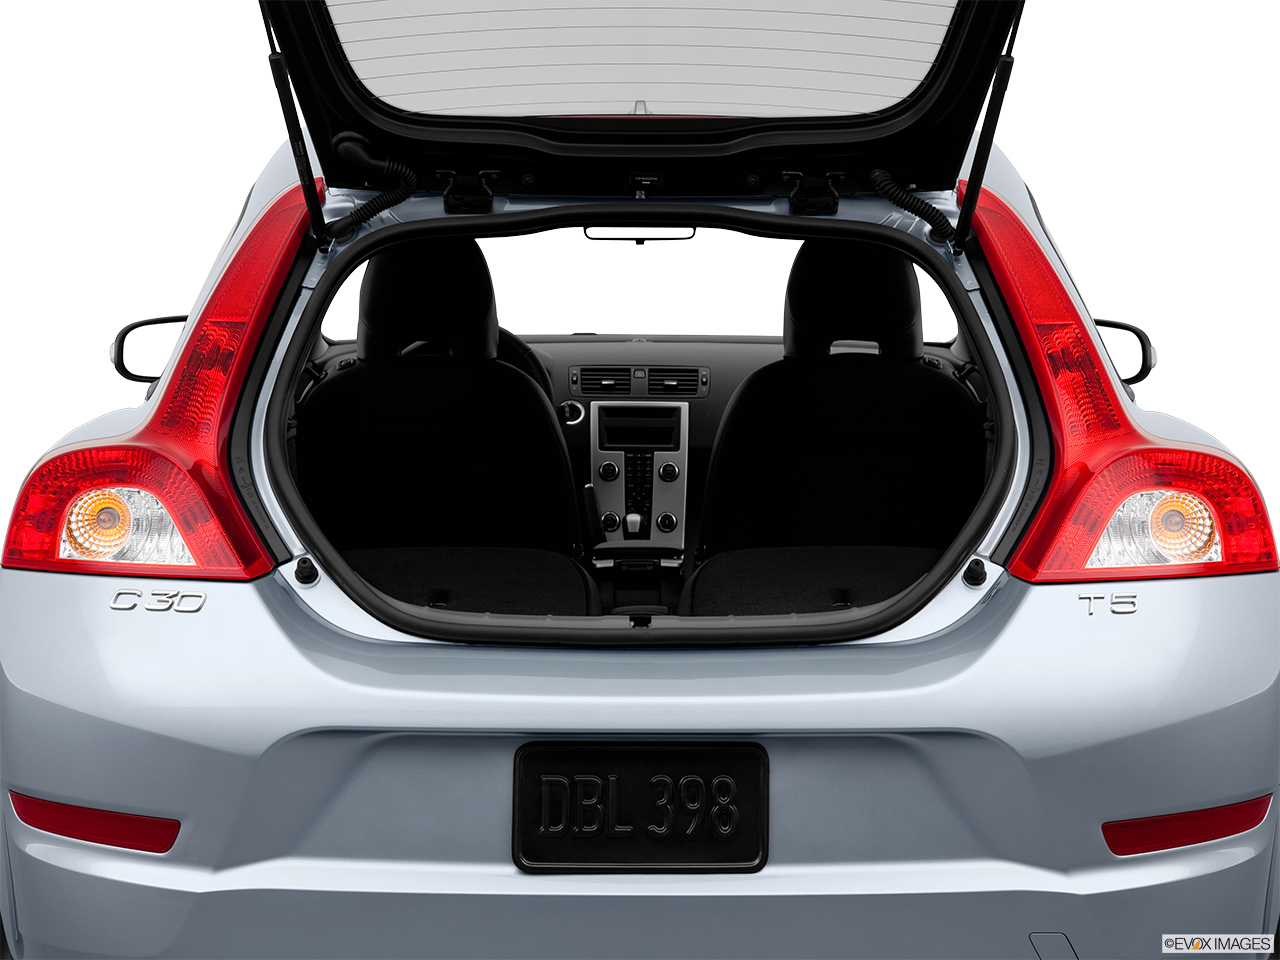 2013 Volvo C30 T5 Premier Plus Hatchback & SUV rear angle.